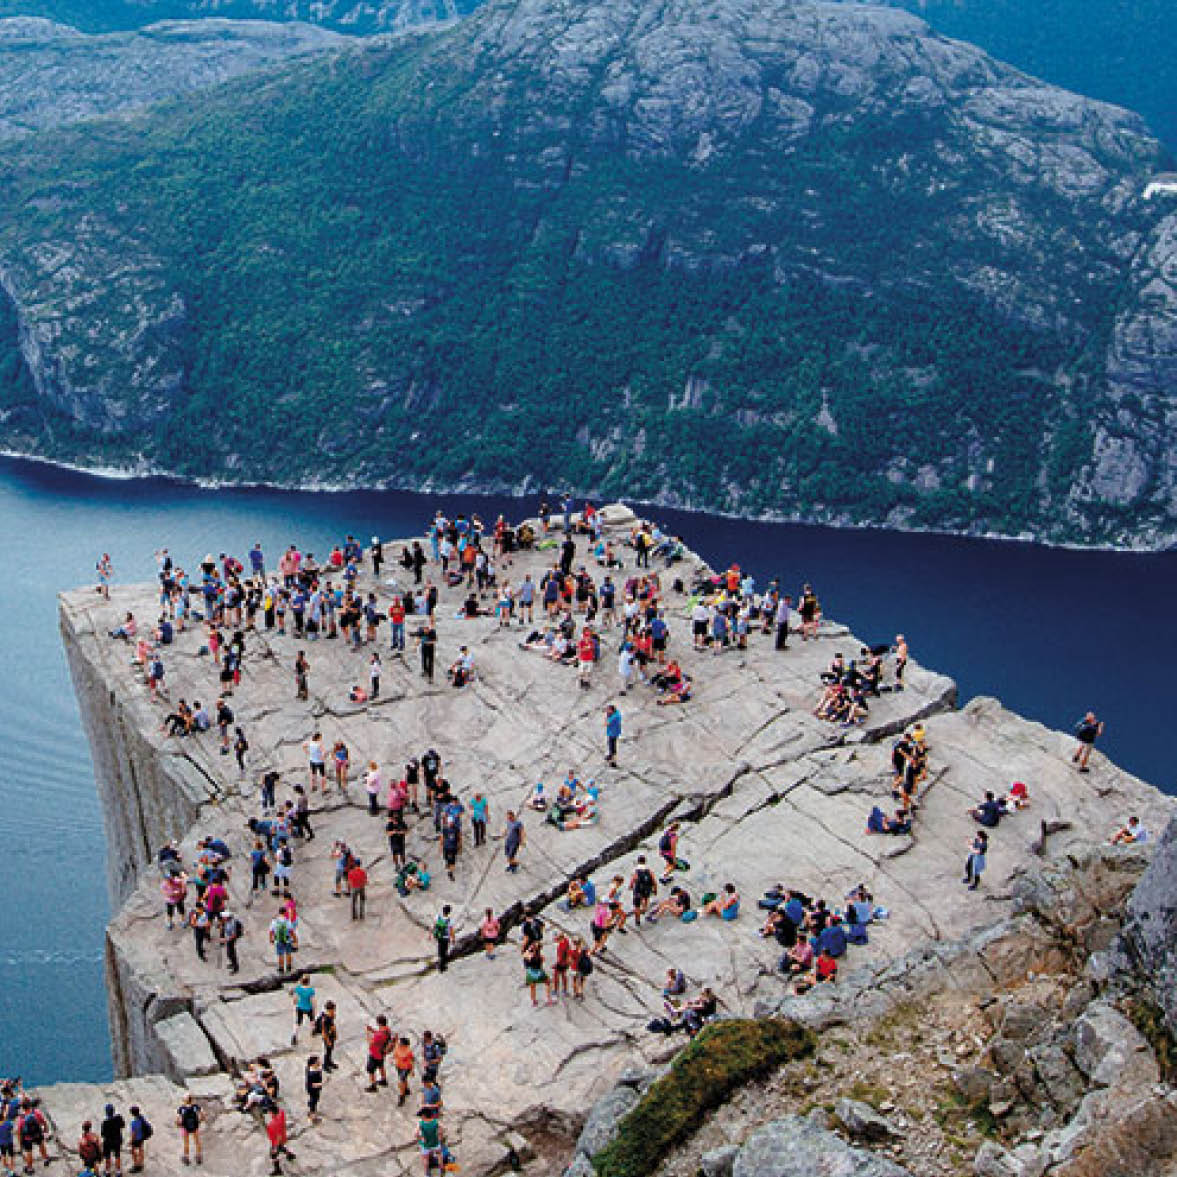 Norway's Great Outdoors